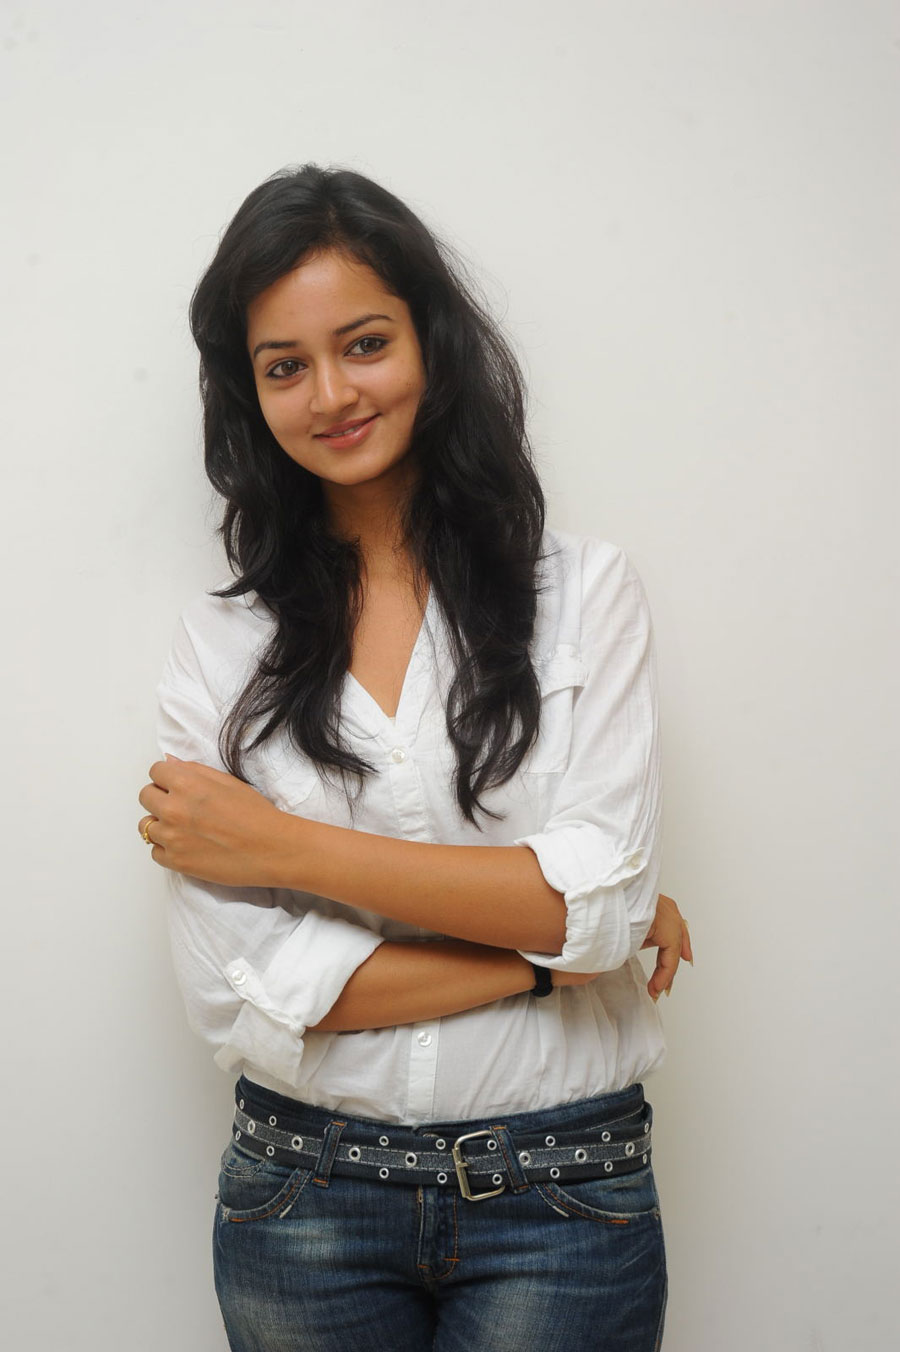 Shanvi Shoot in Adda Press Meet Photo Gallery Sanvi-23